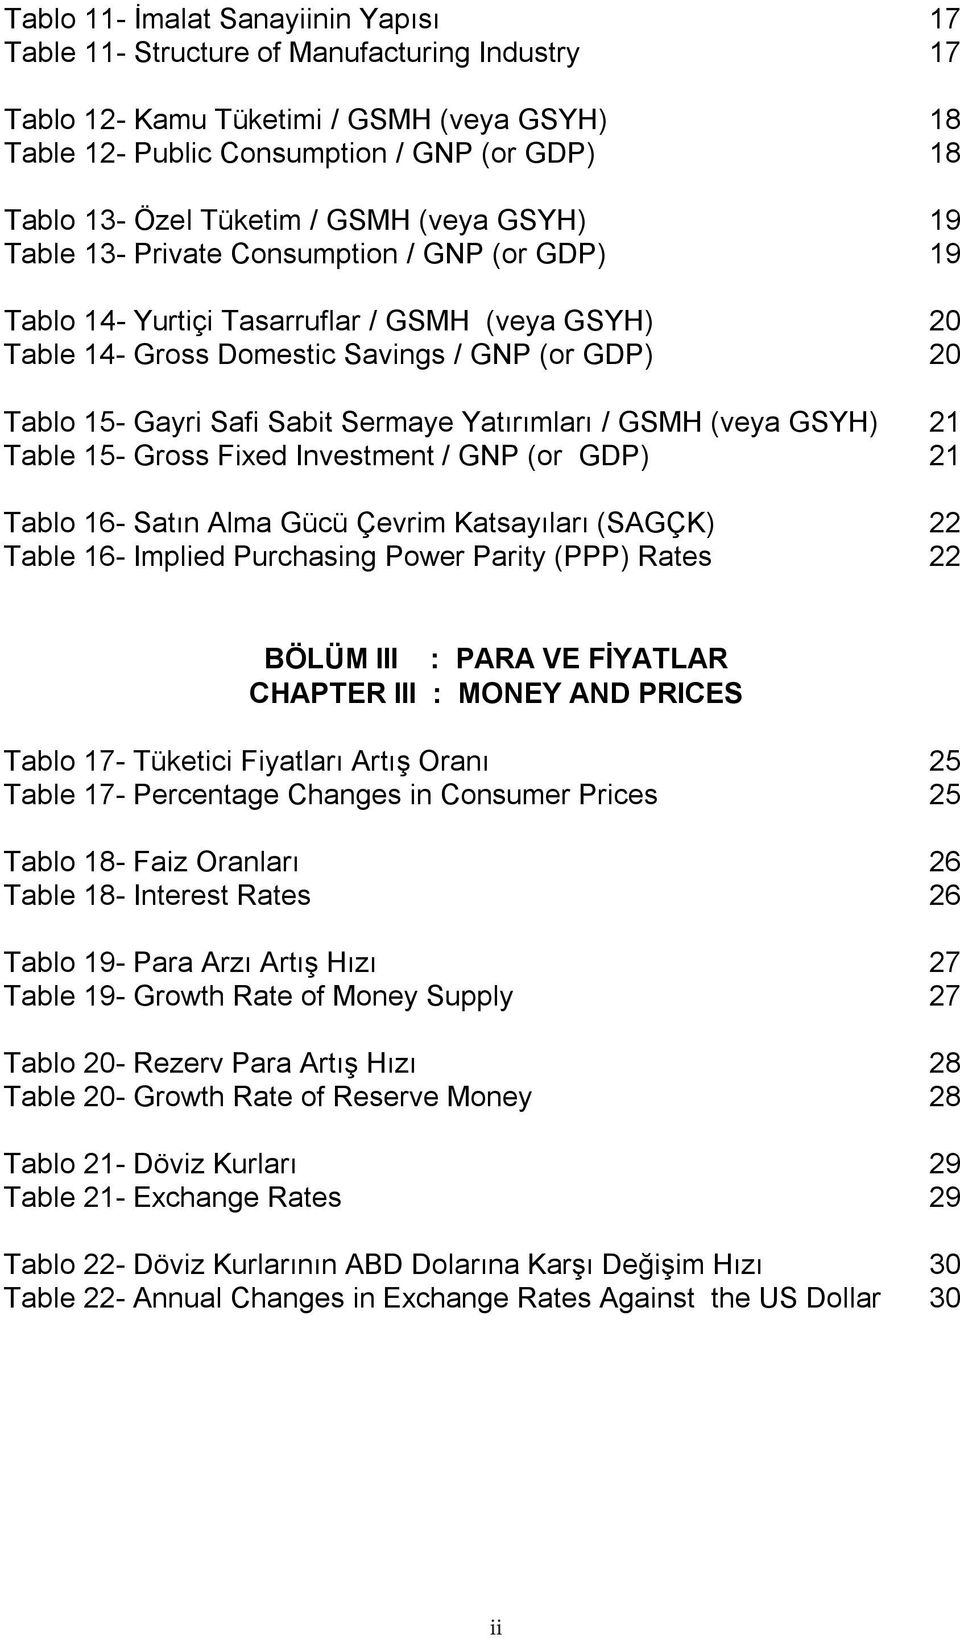 Safi Sabit Sermaye Yatırımları / GSMH (veya GSYH) 21 Table 15- Gross Fixed Investment / GNP (or GDP) 21 Tablo 16- Satın Alma Gücü Çevrim Katsayıları (SAGÇK) 22 Table 16- Implied Purchasing Power